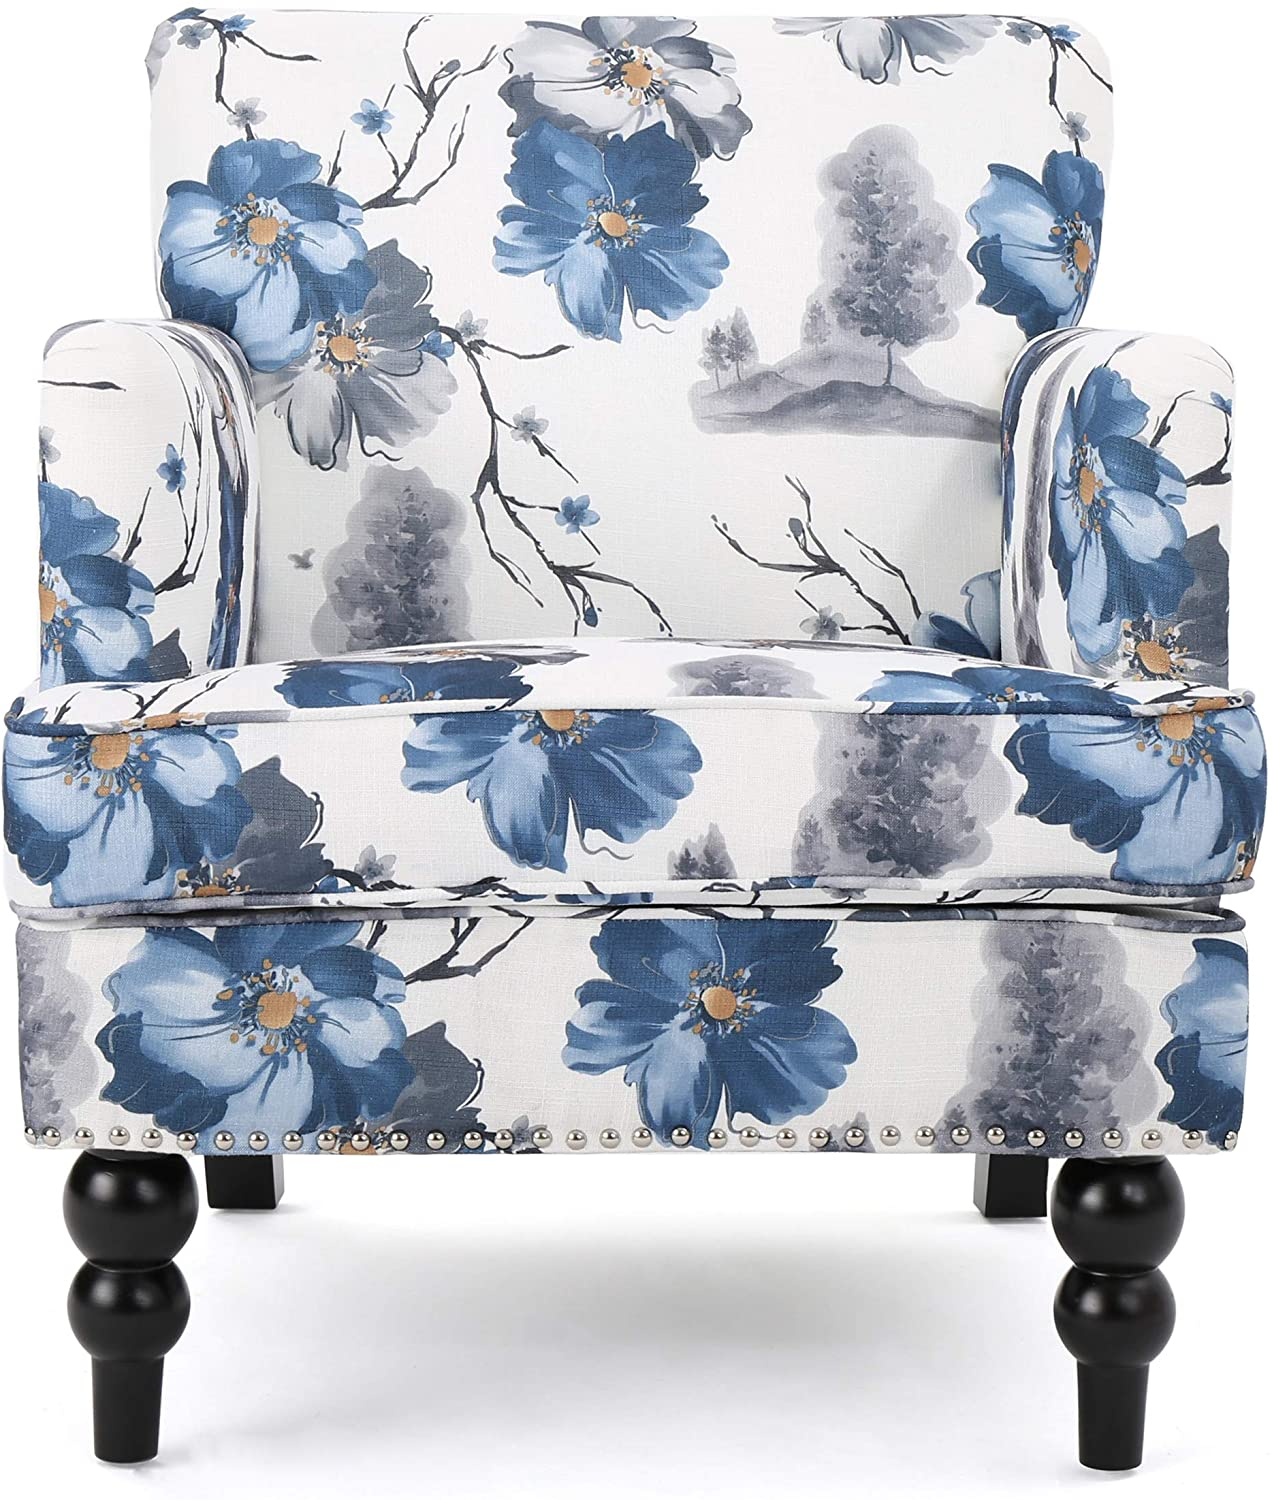 Studded Fabric Floral Print Club Chair